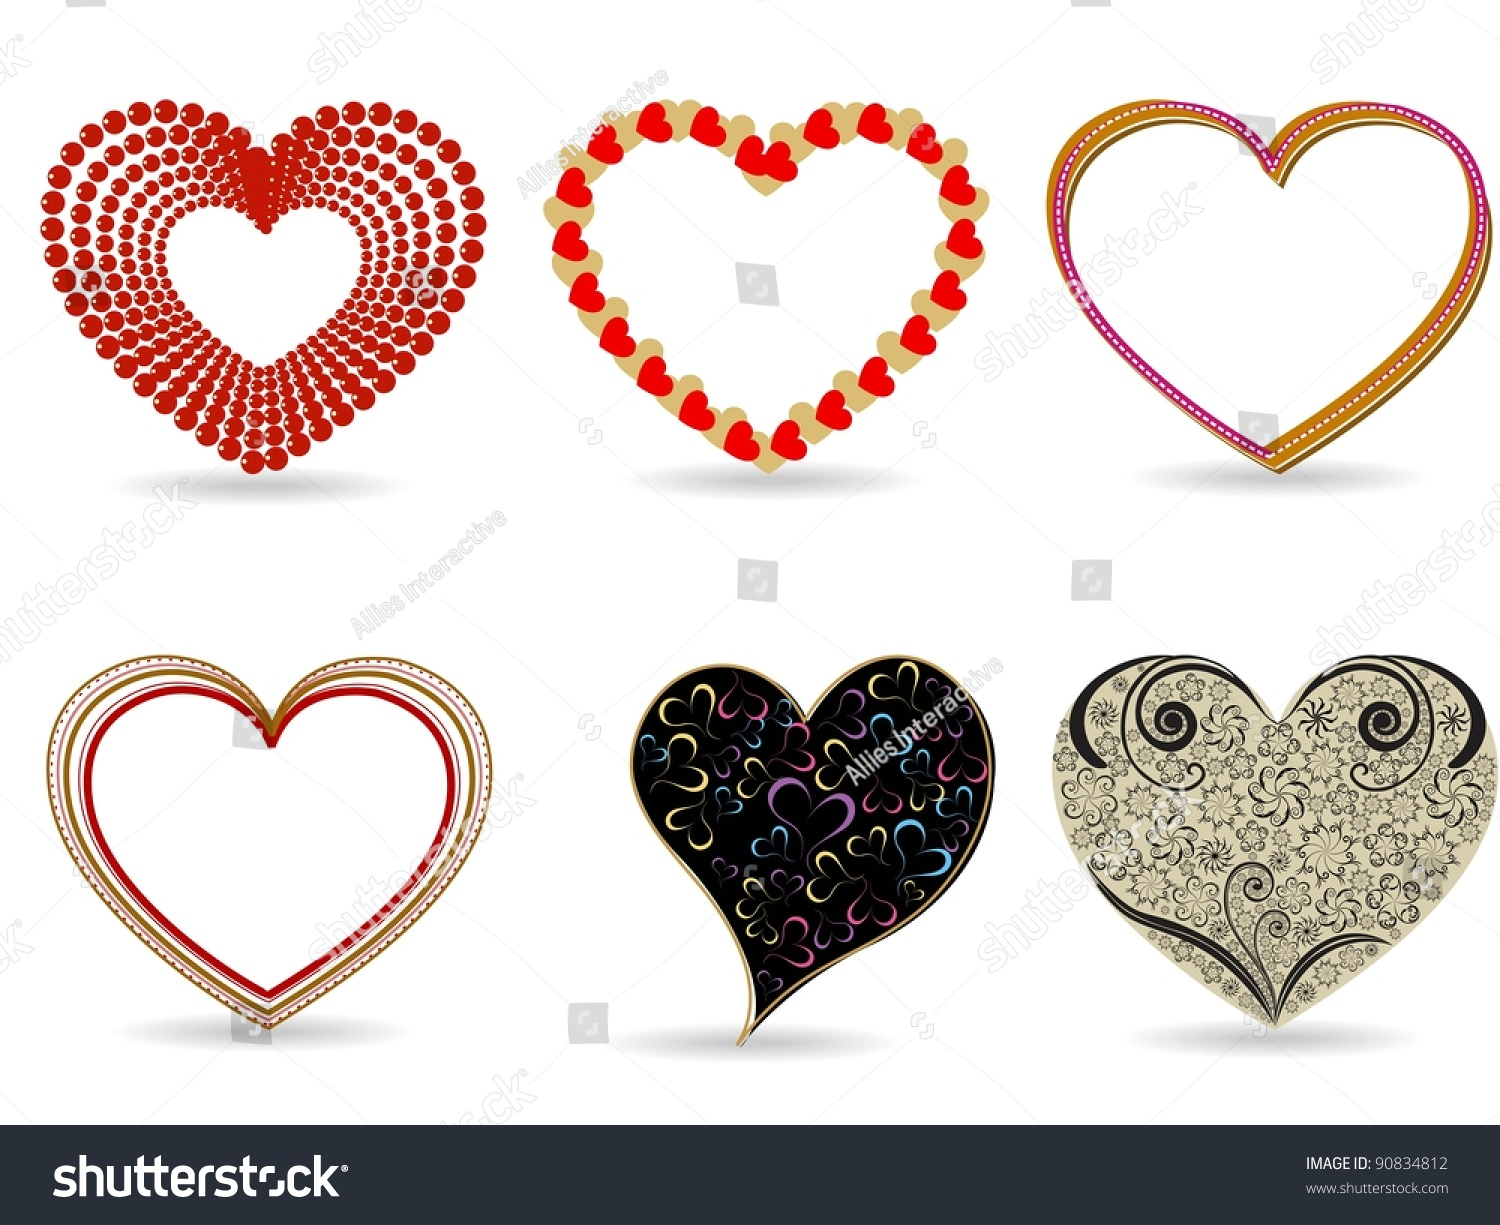 A Set Of Different Style Decorative Hearts Shapes For